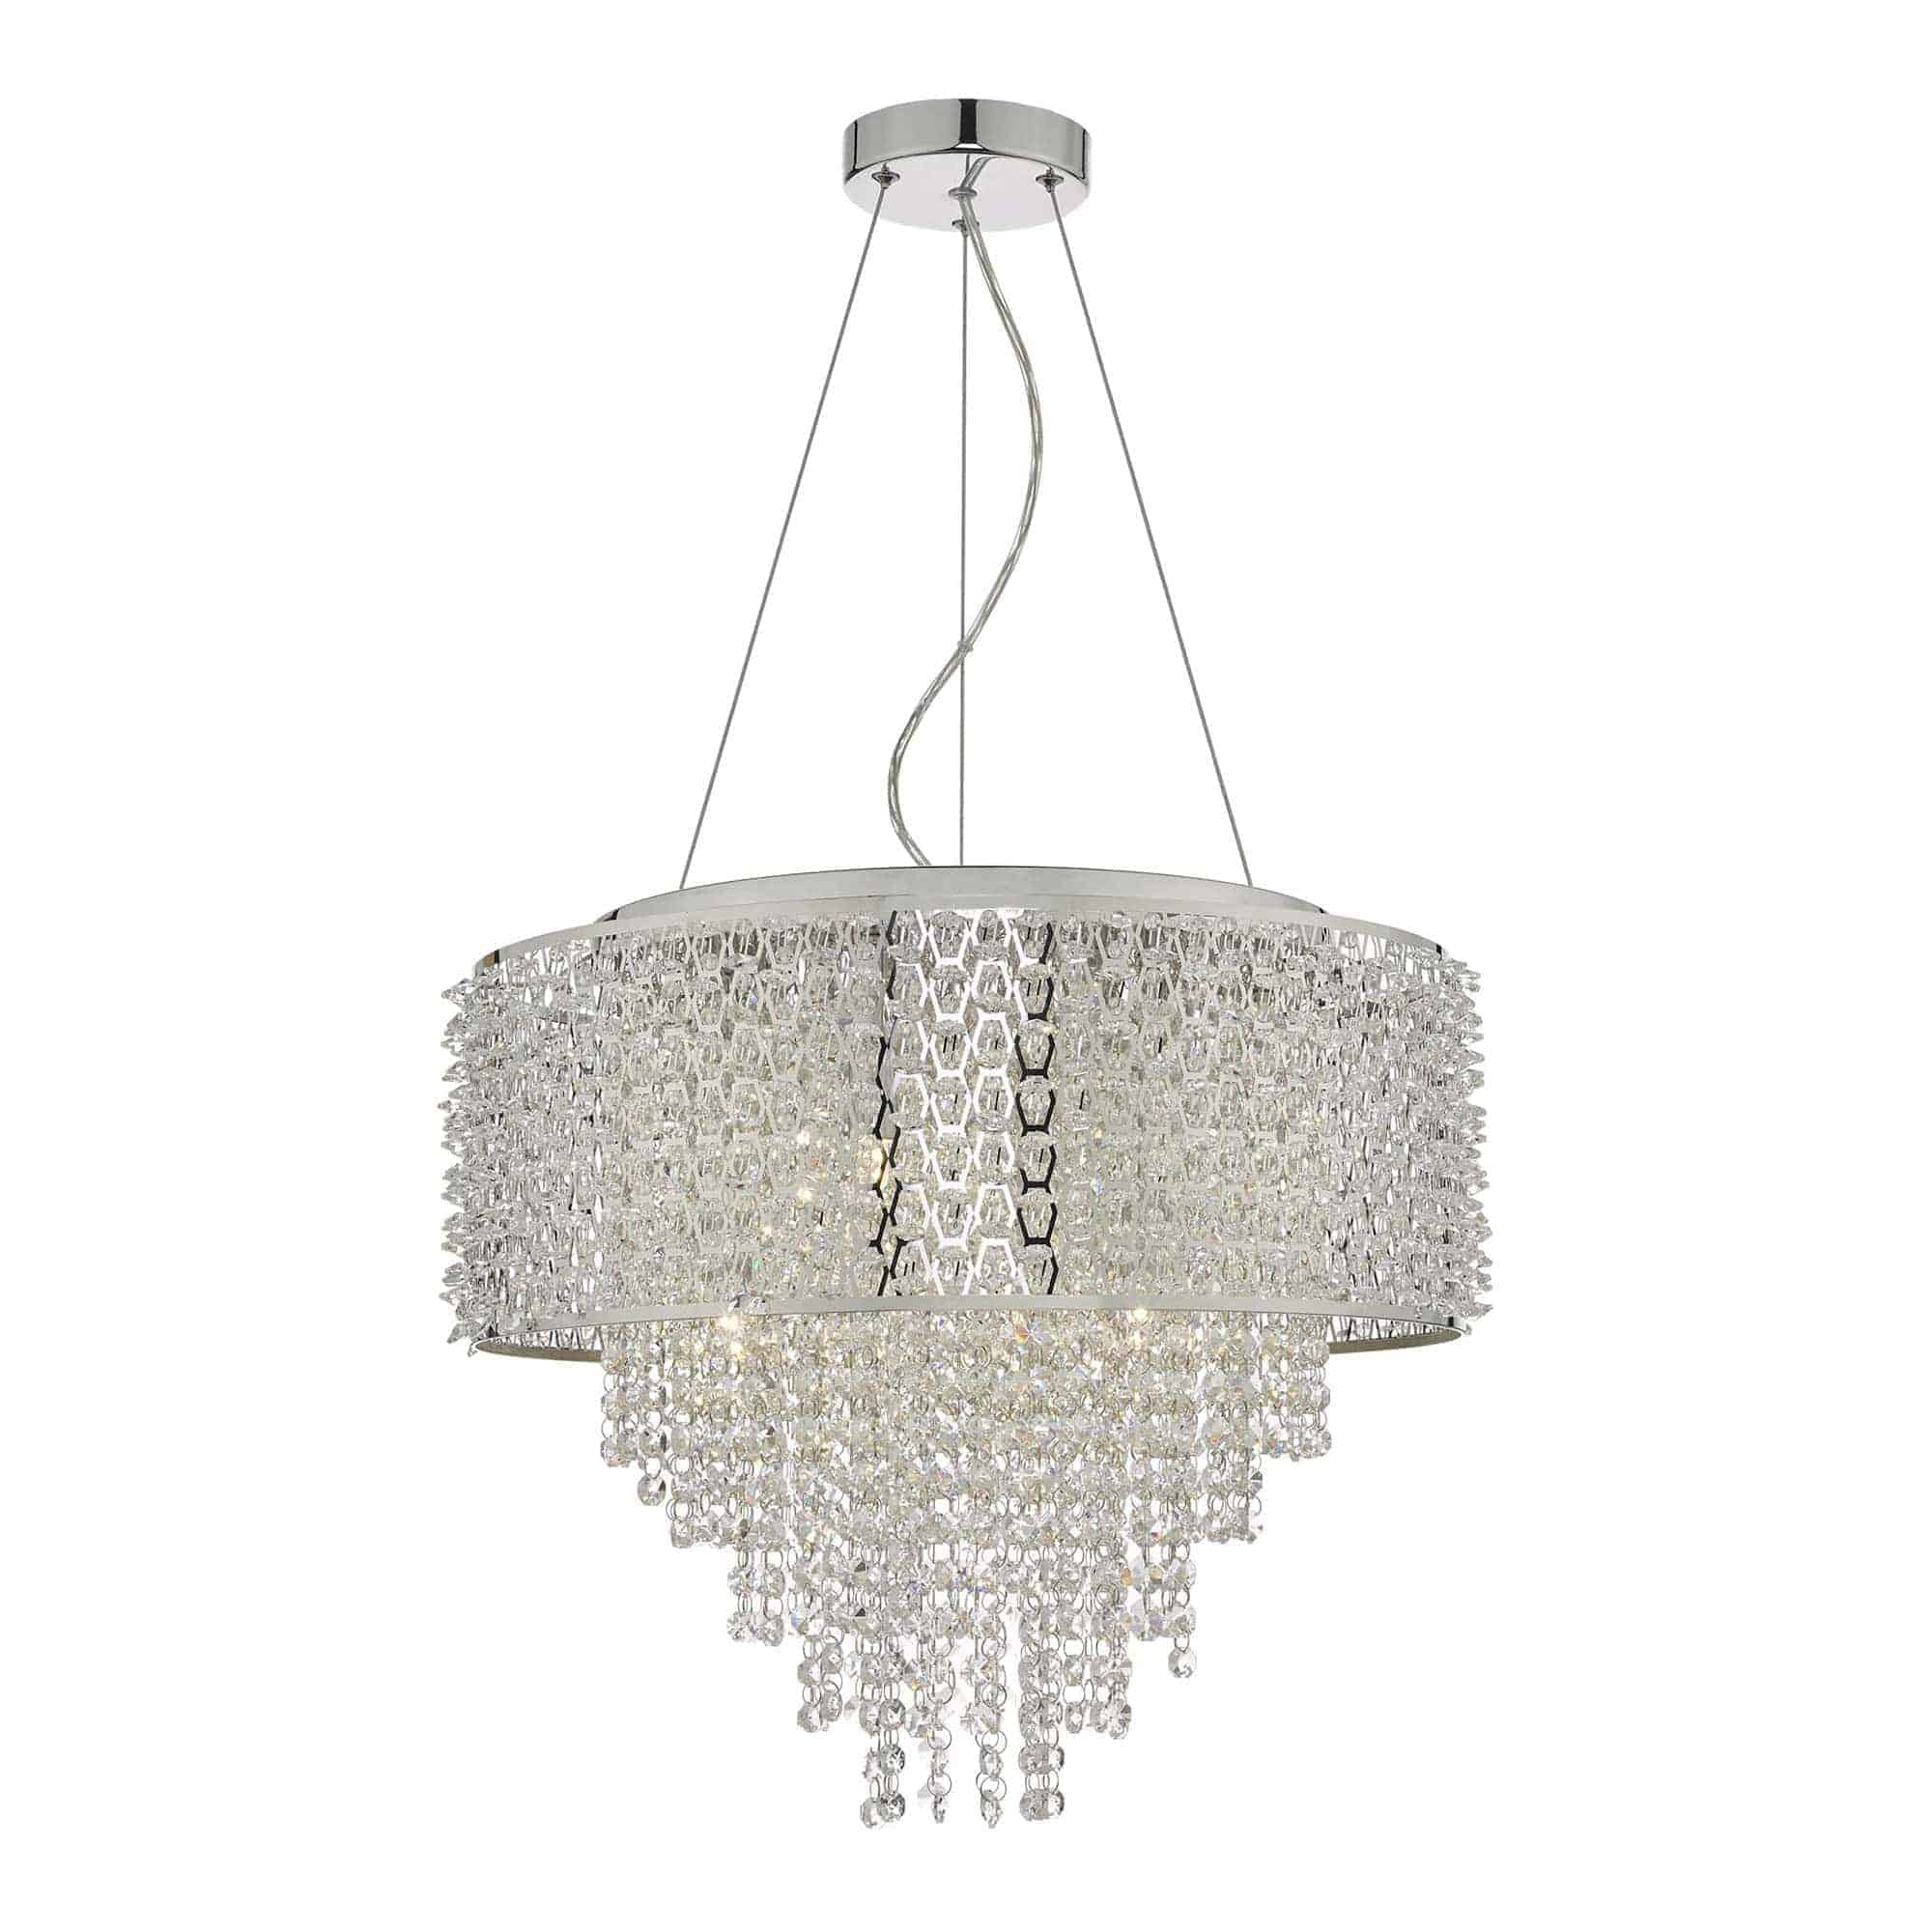 Dar ACE0650 Acelynn 6 Light Pendant Polished Chrome & Crystal